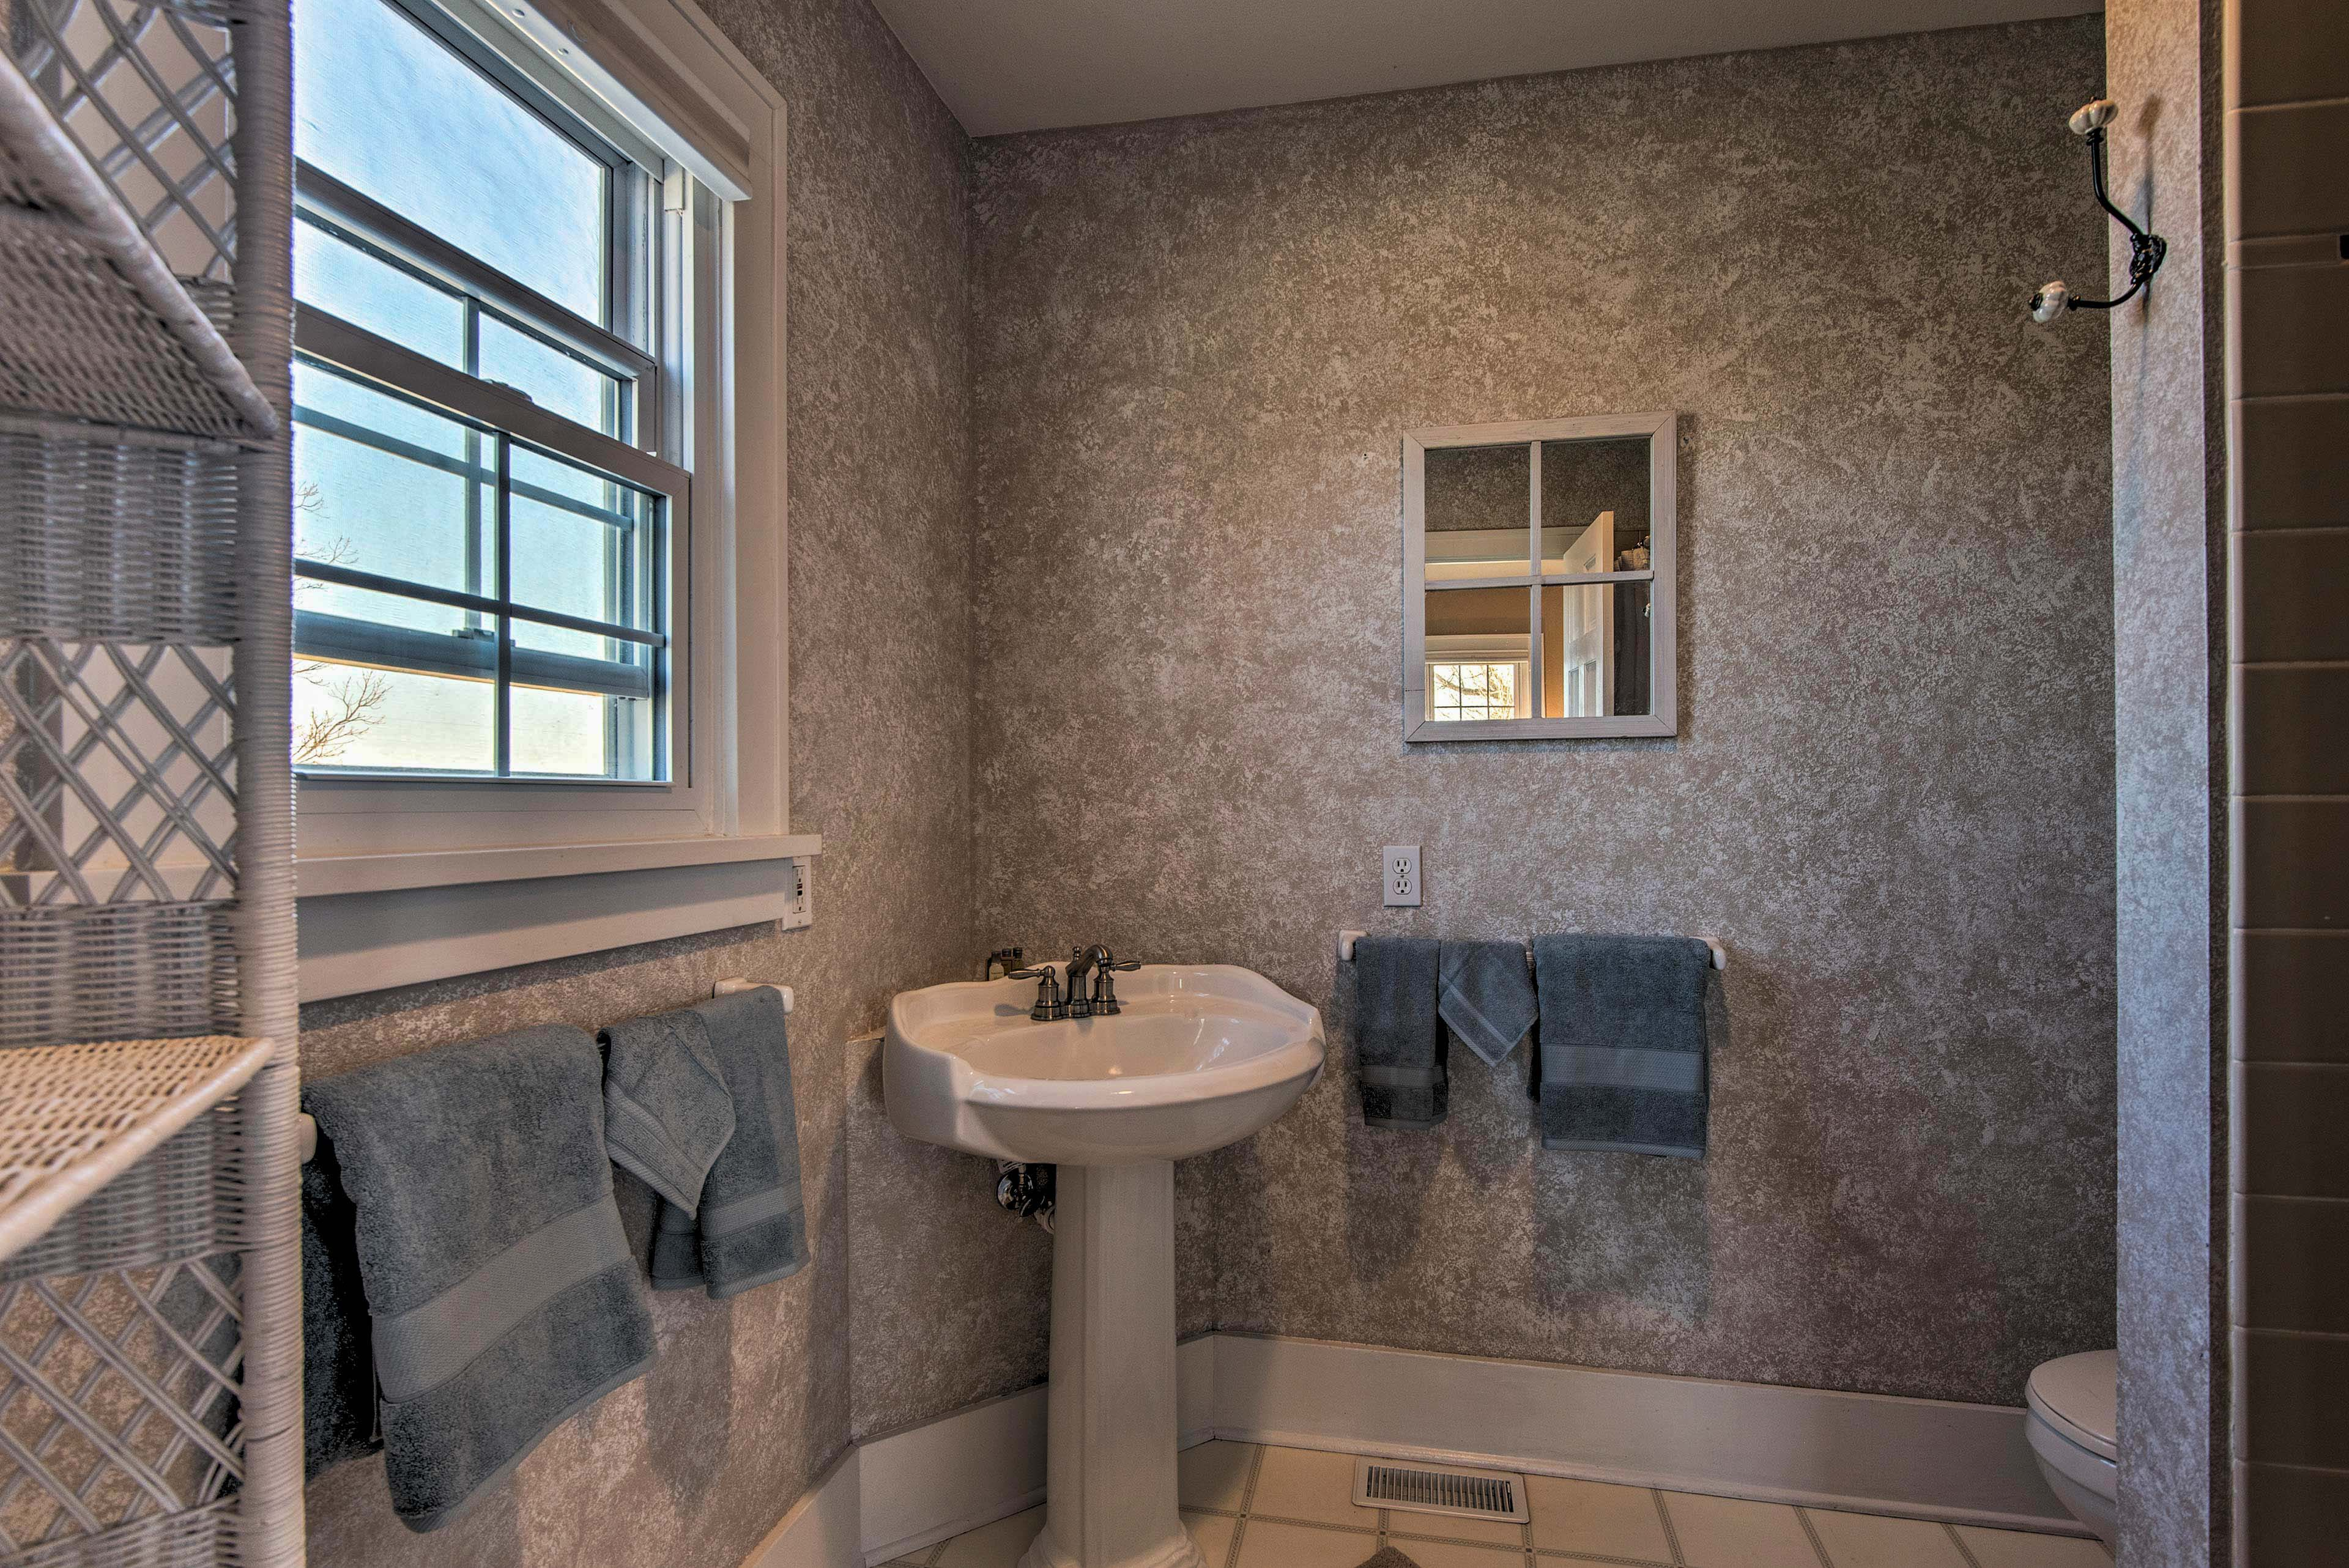 An en-suite bathroom is provided for convenience.